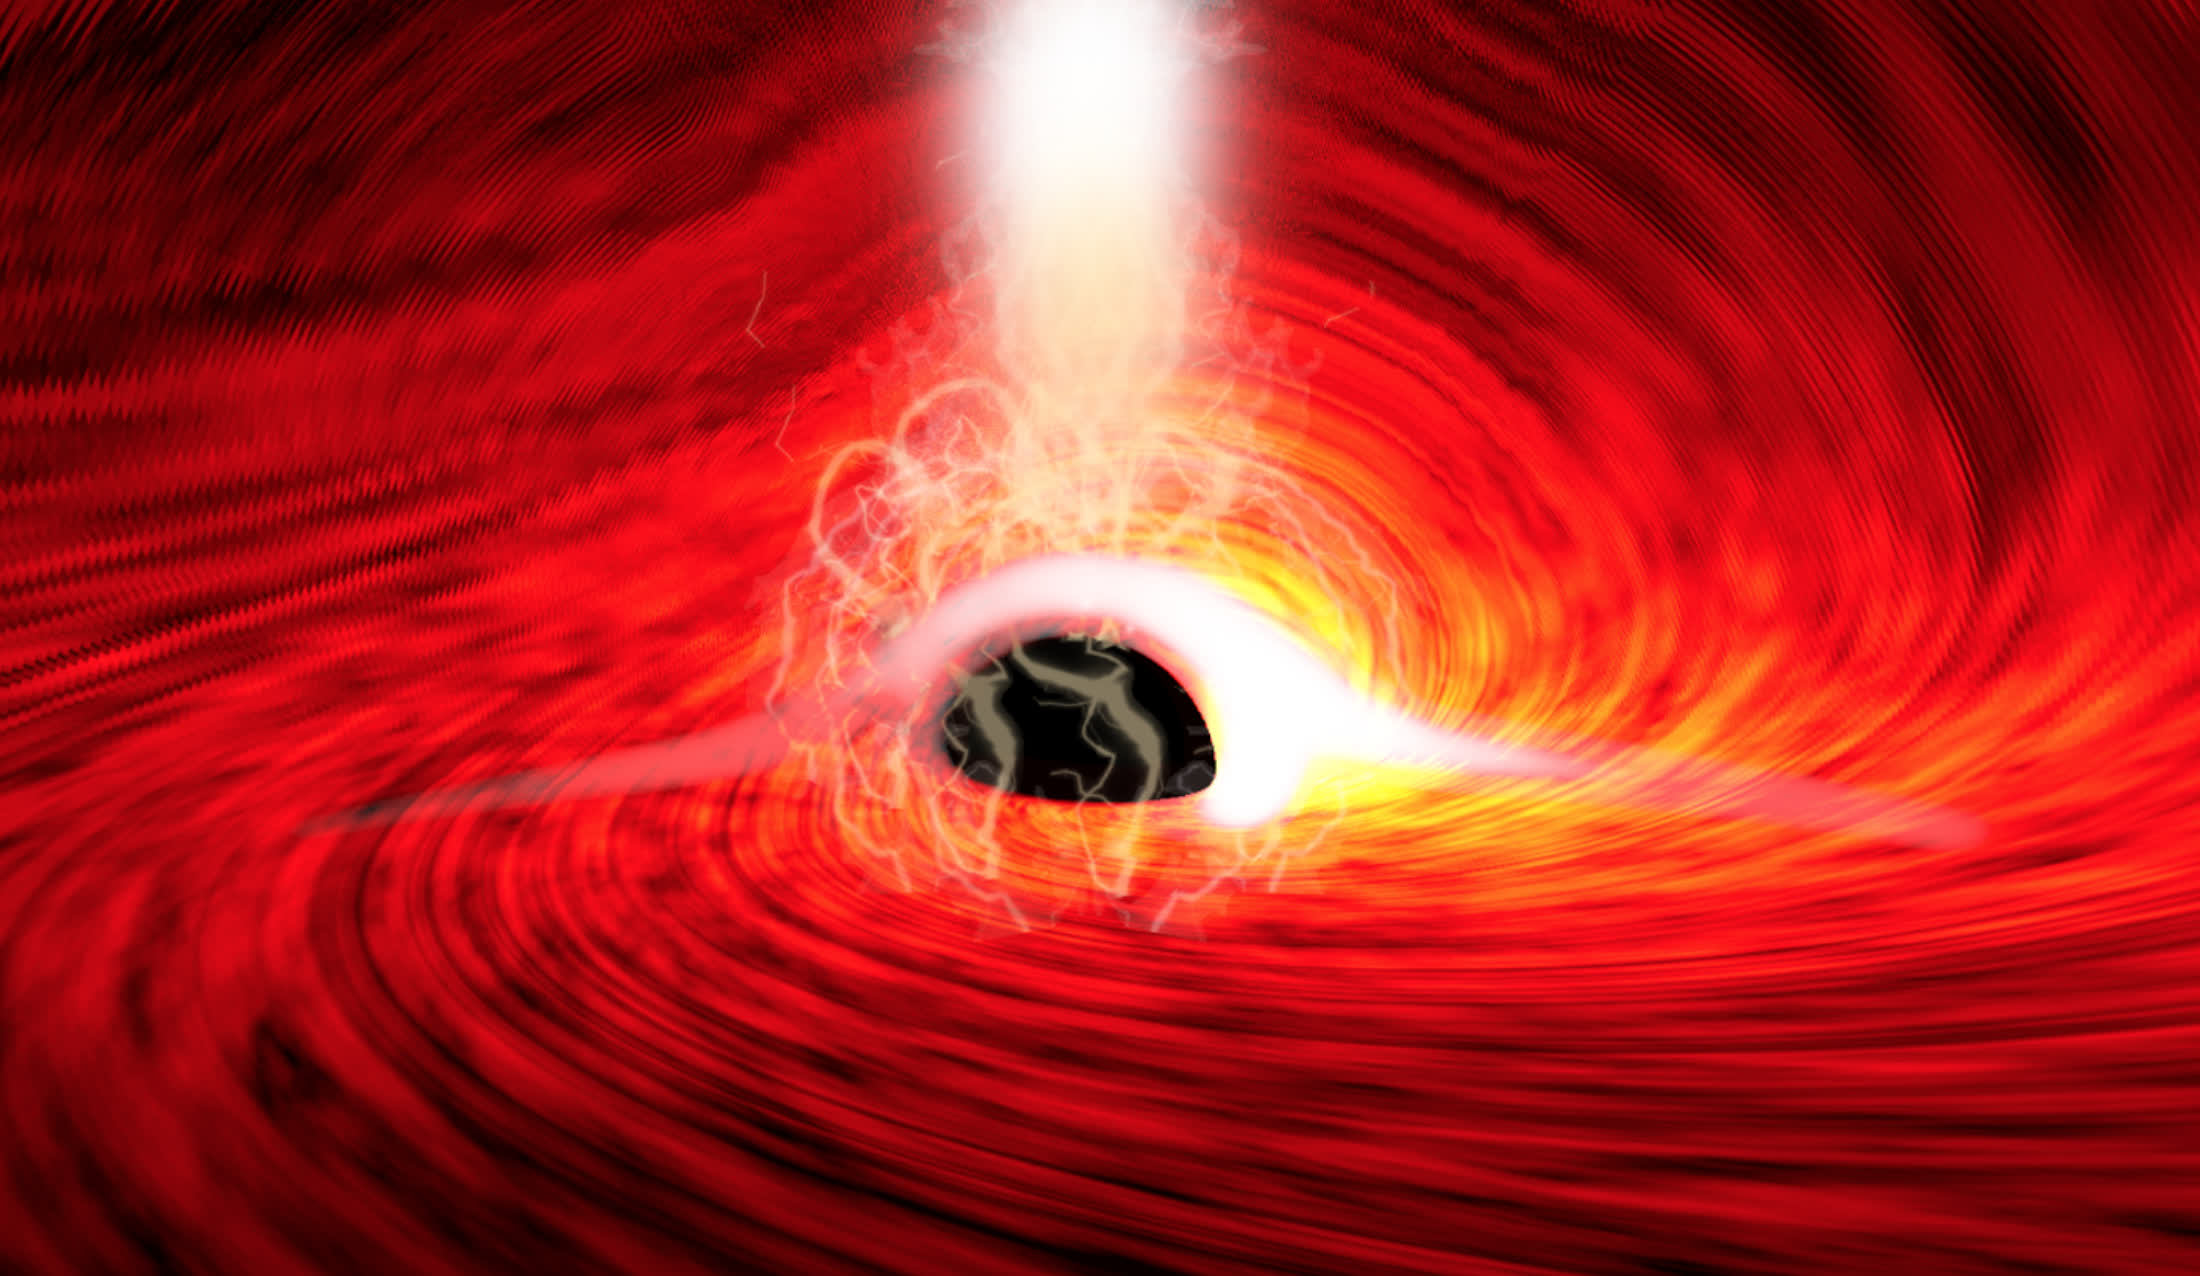 Astronomers spot light behind a black hole for the first time, reaffirming Einstein's theory of general relativity